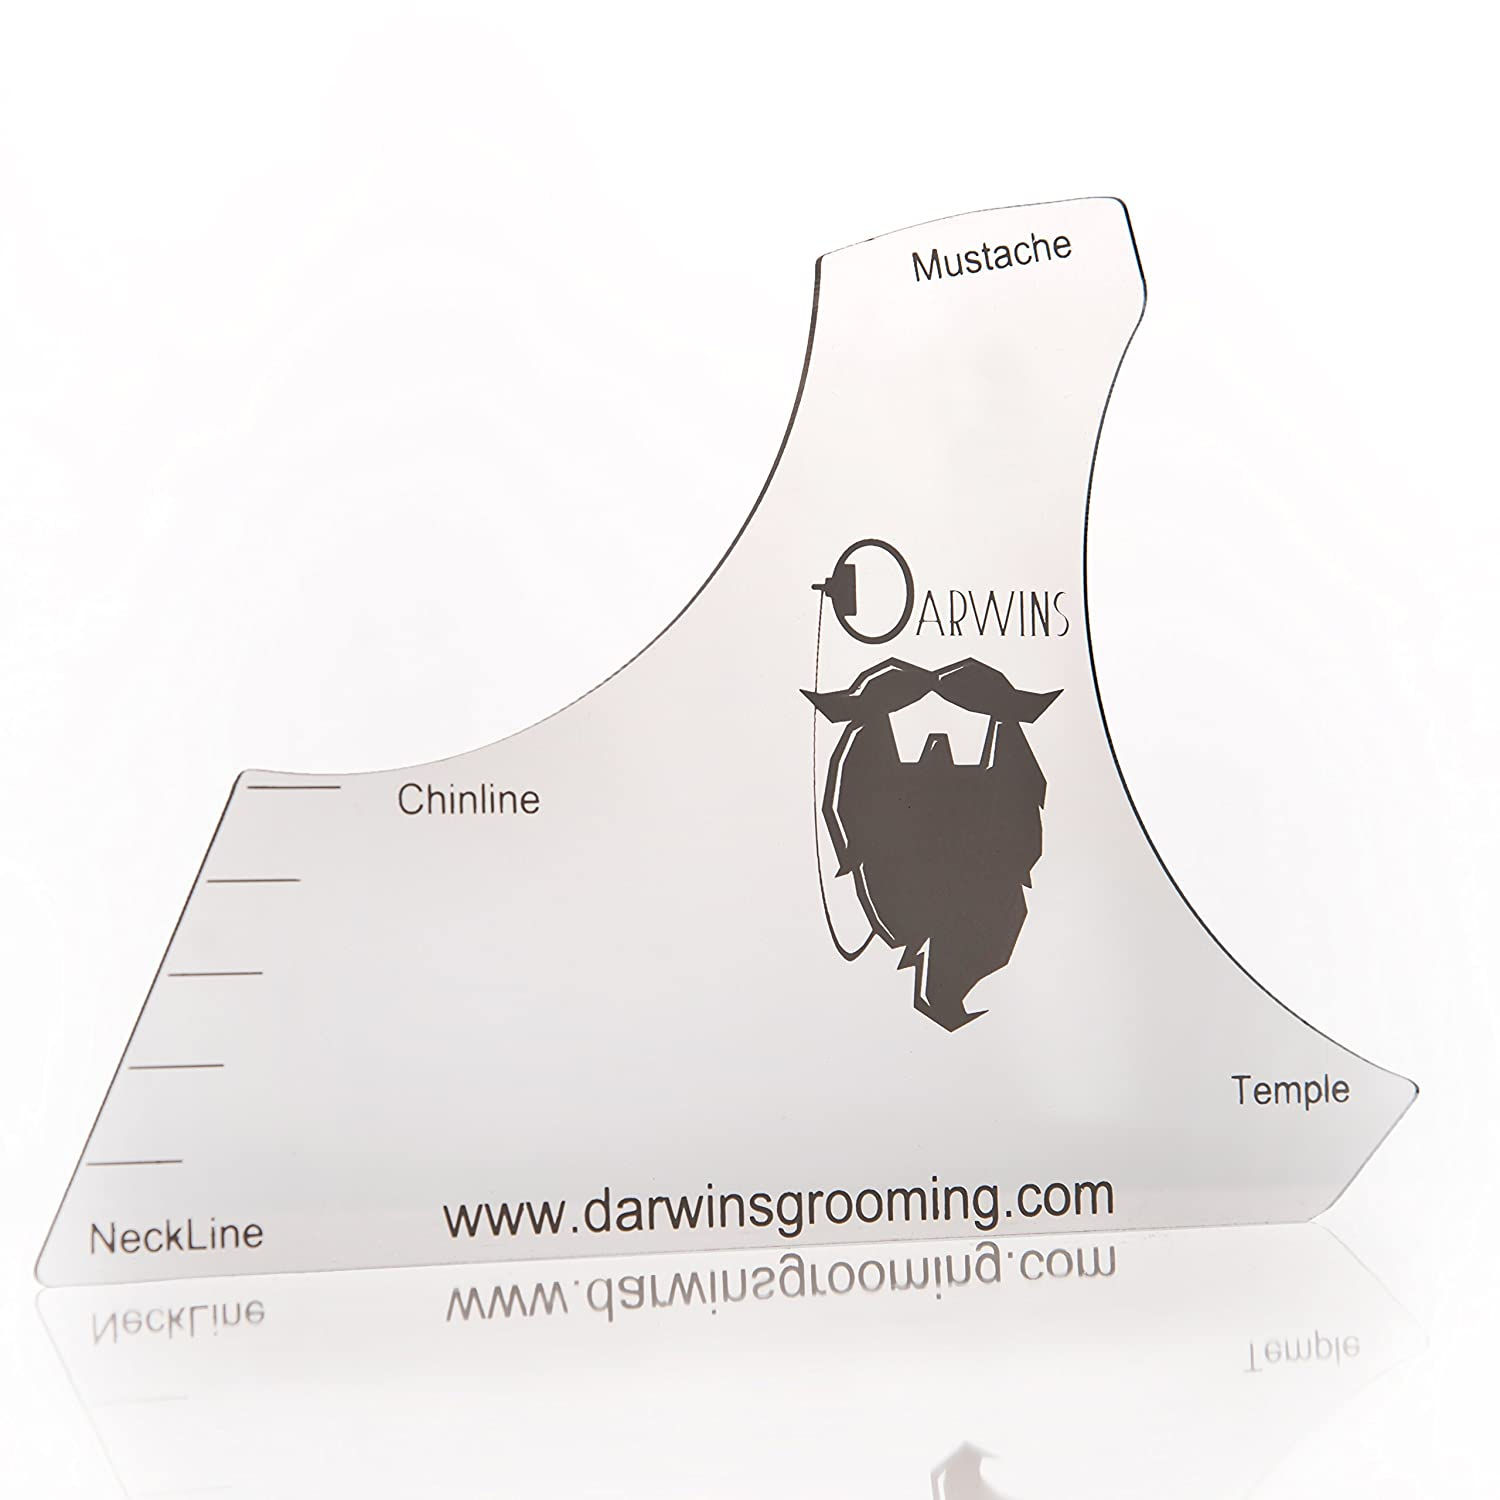 picture about Beard Shaping Template Printable called Darwins Beard Shaper Template - (Consists of Absolutely free Beard Comb!) Establish The Great Symmetric